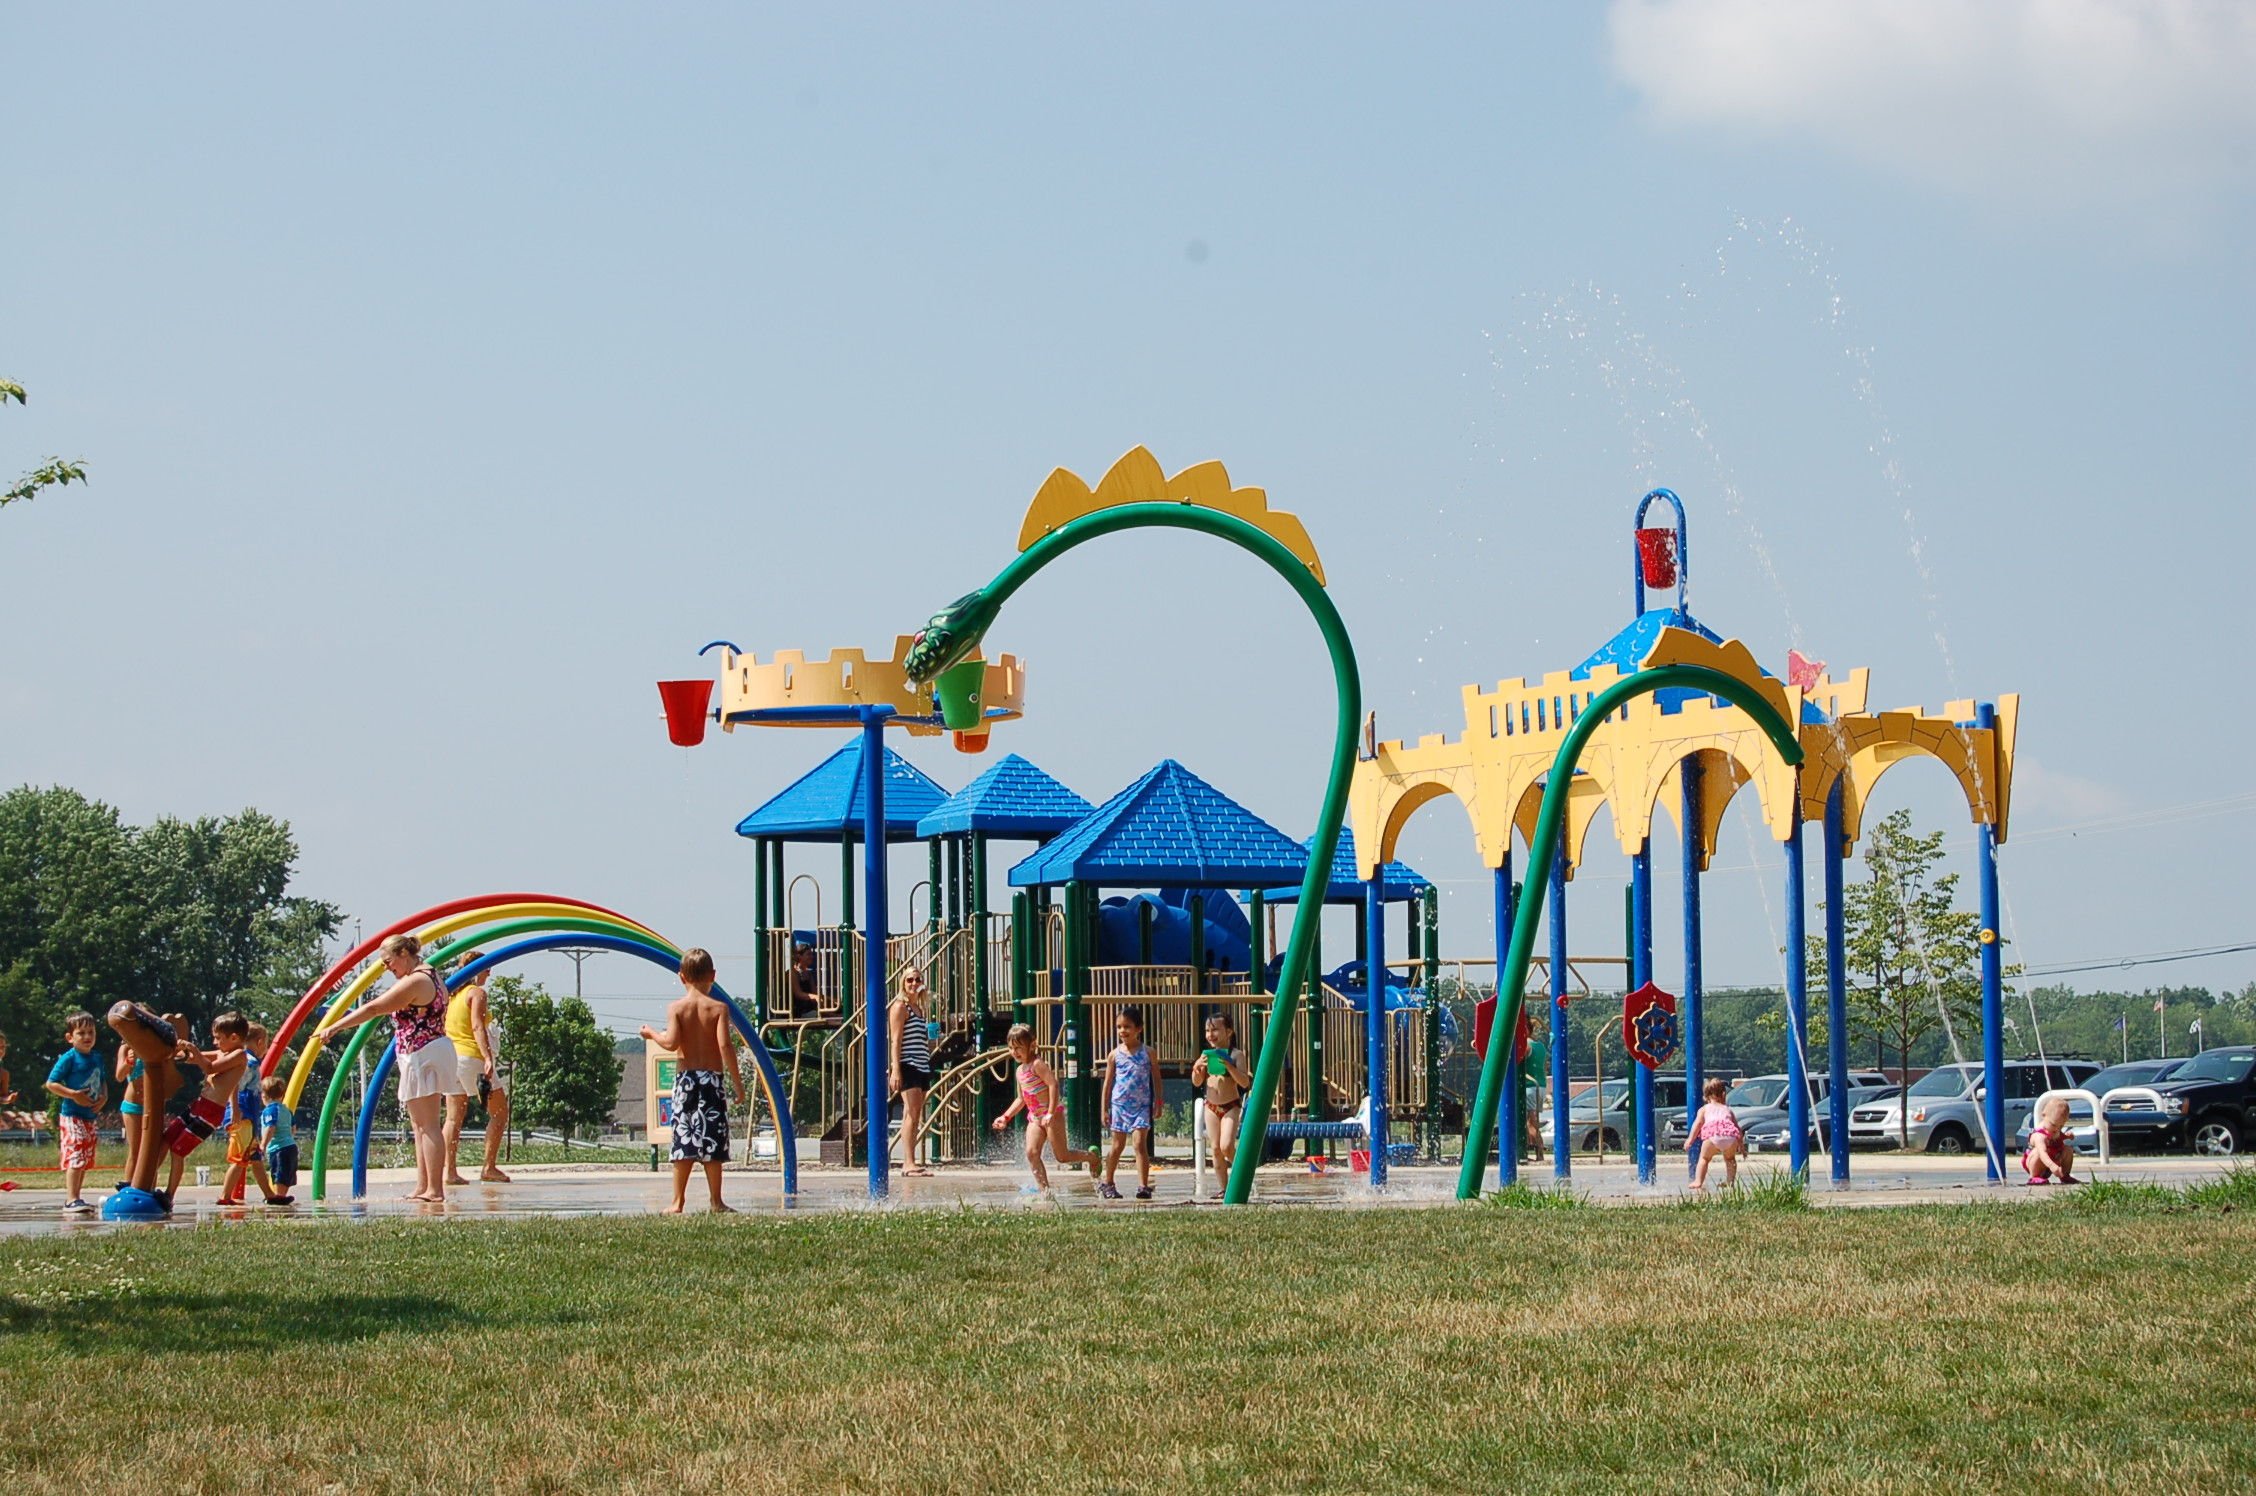 Billericay Park Splash Pad